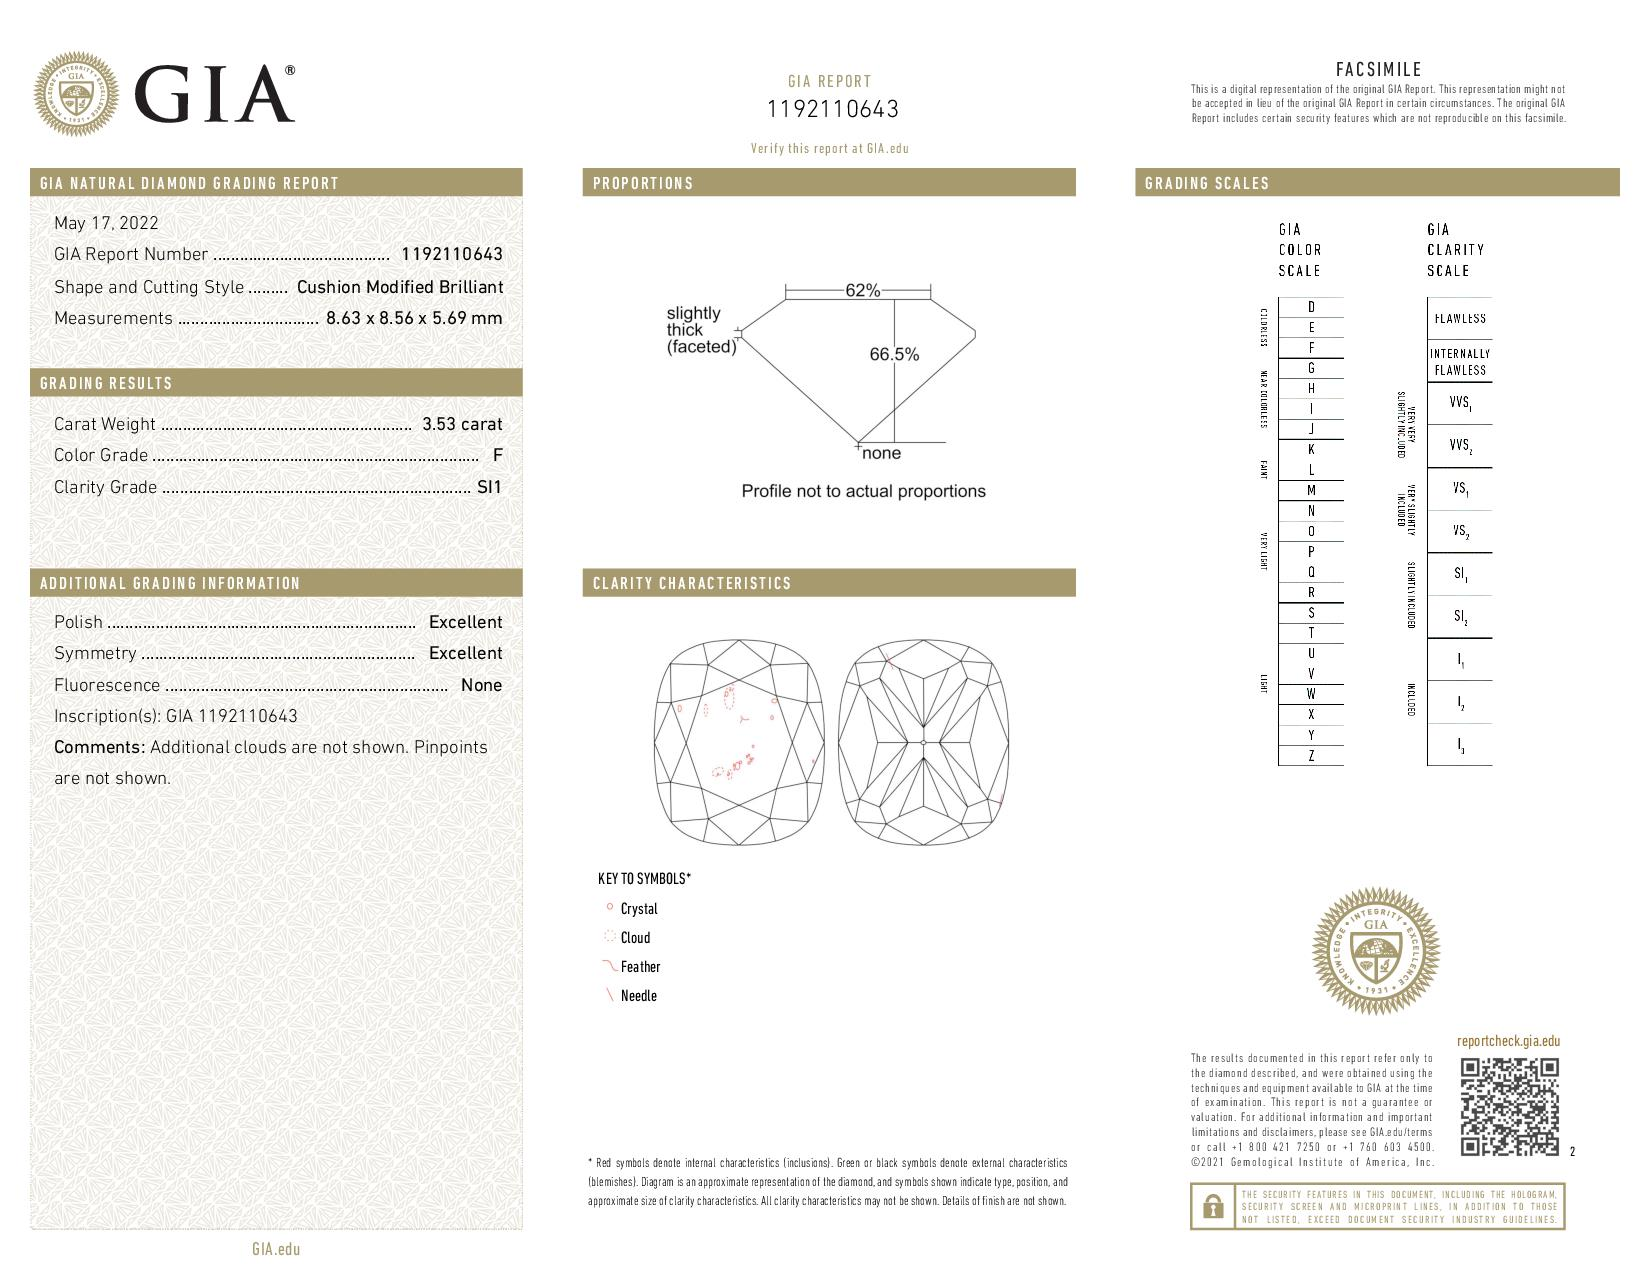 This is a 3.53 carat cushion shape, F color, SI1 clarity natural diamond accompanied by a GIA grading report.